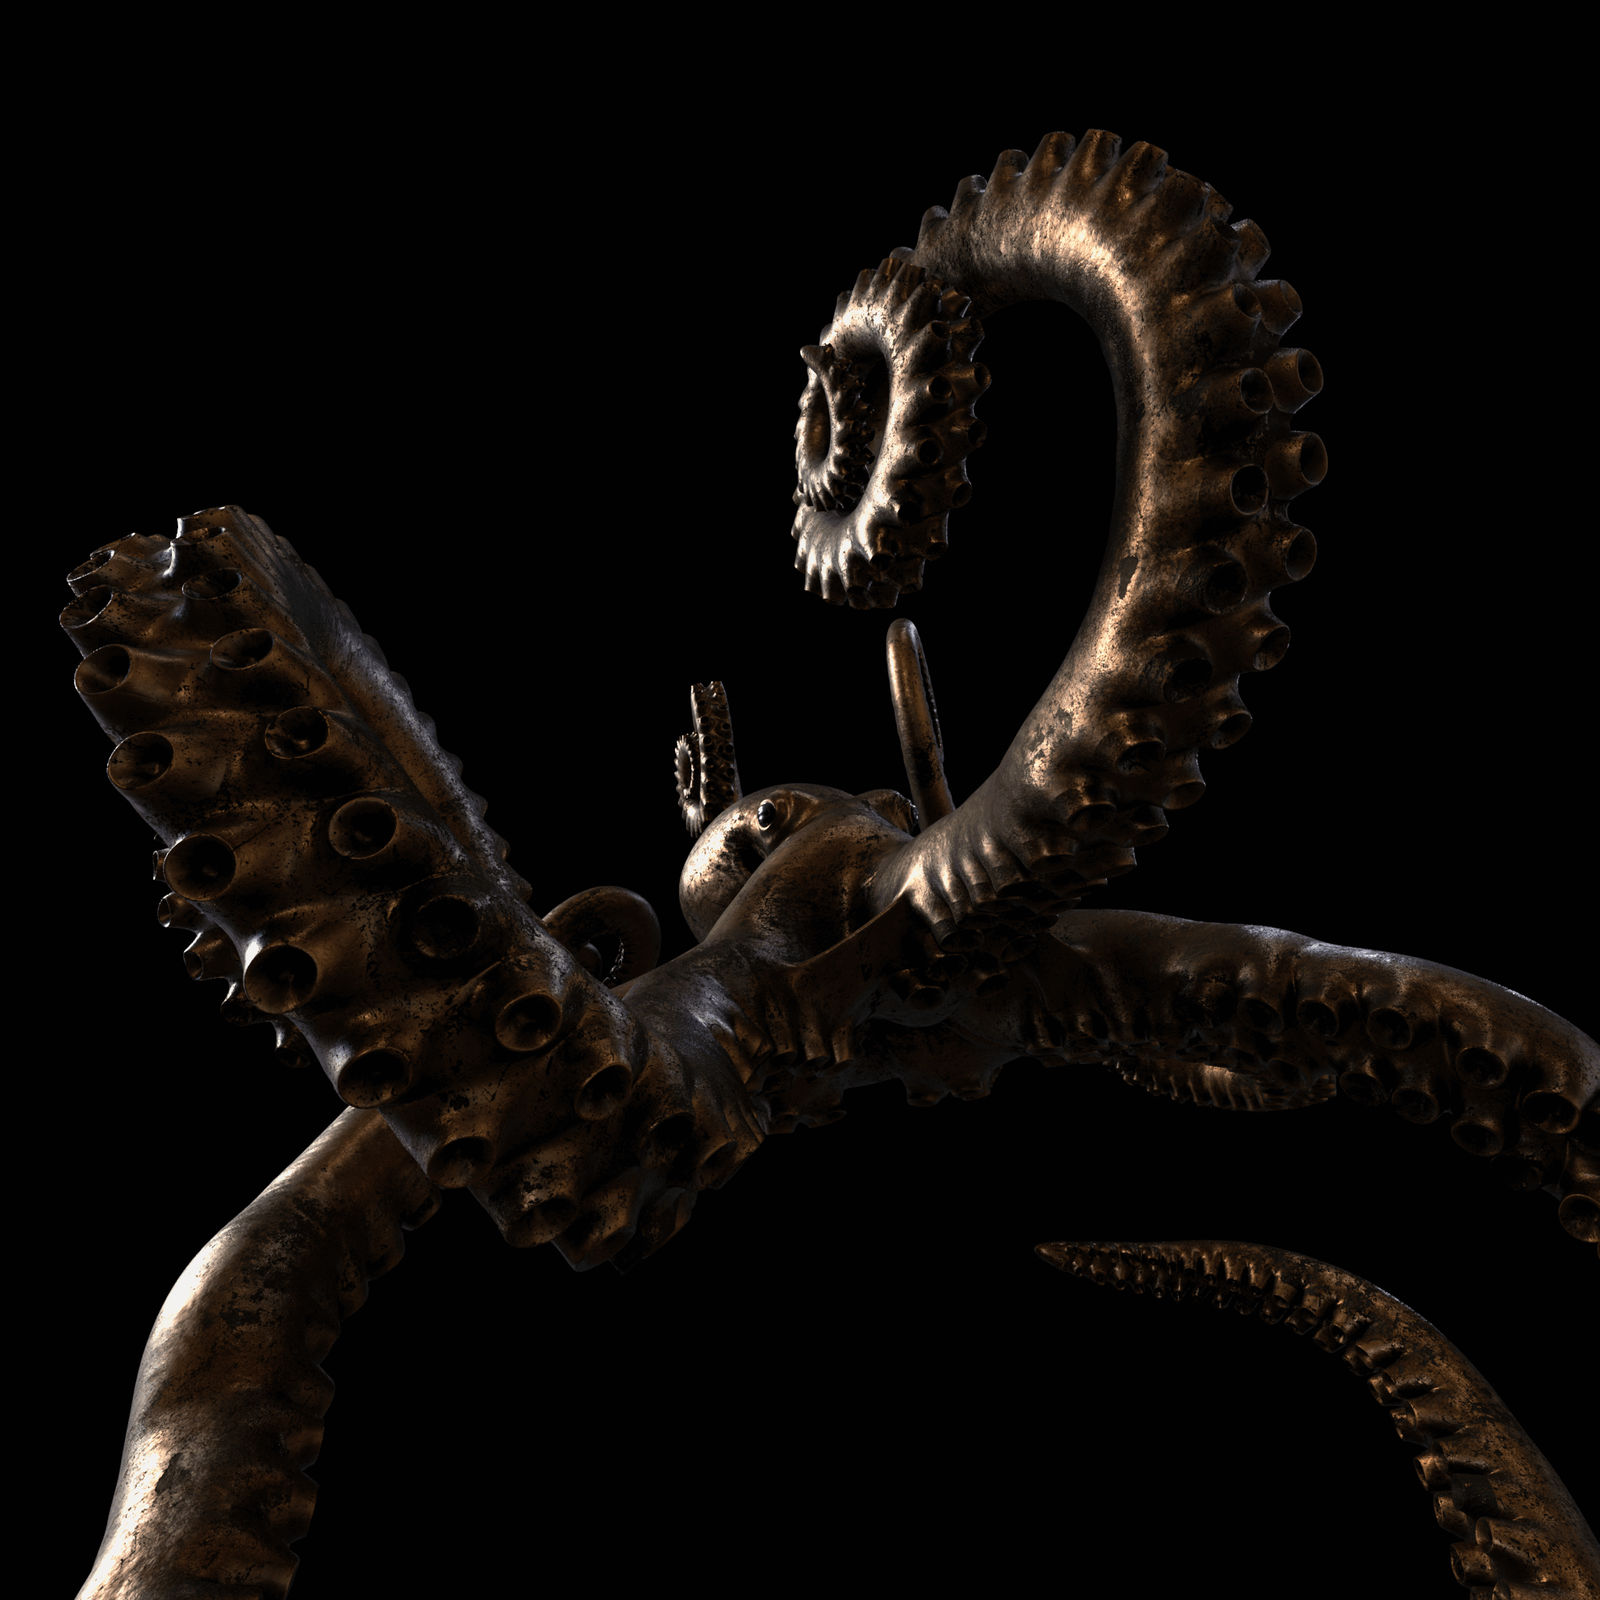 3D render of an octopus with a procedural bronzo material